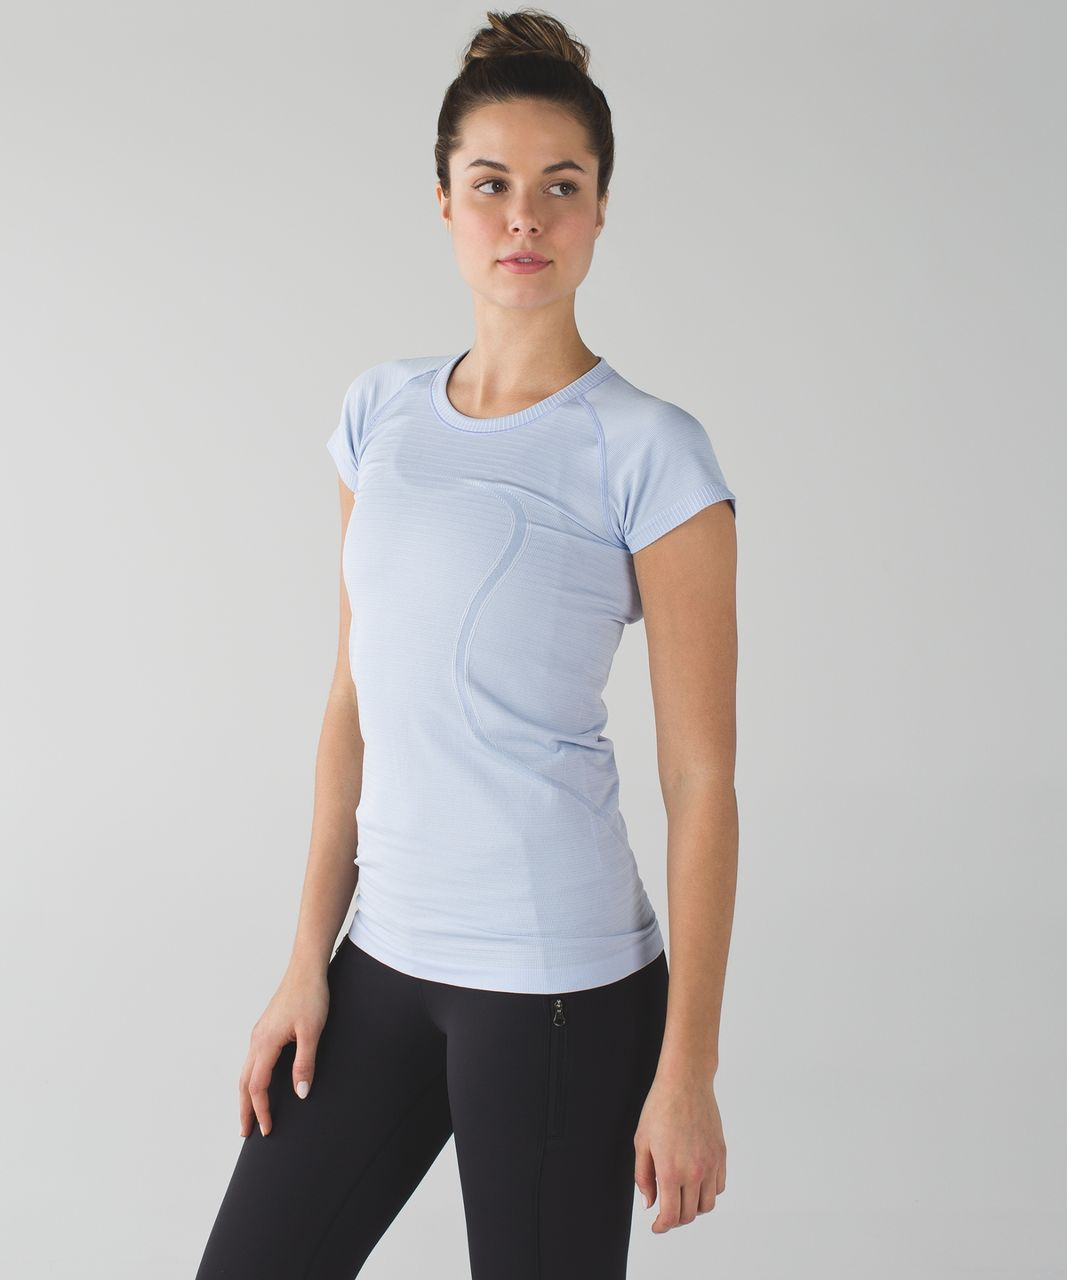 Lululemon Swiftly Tech Short Sleeve Crew - Heathered Chalk